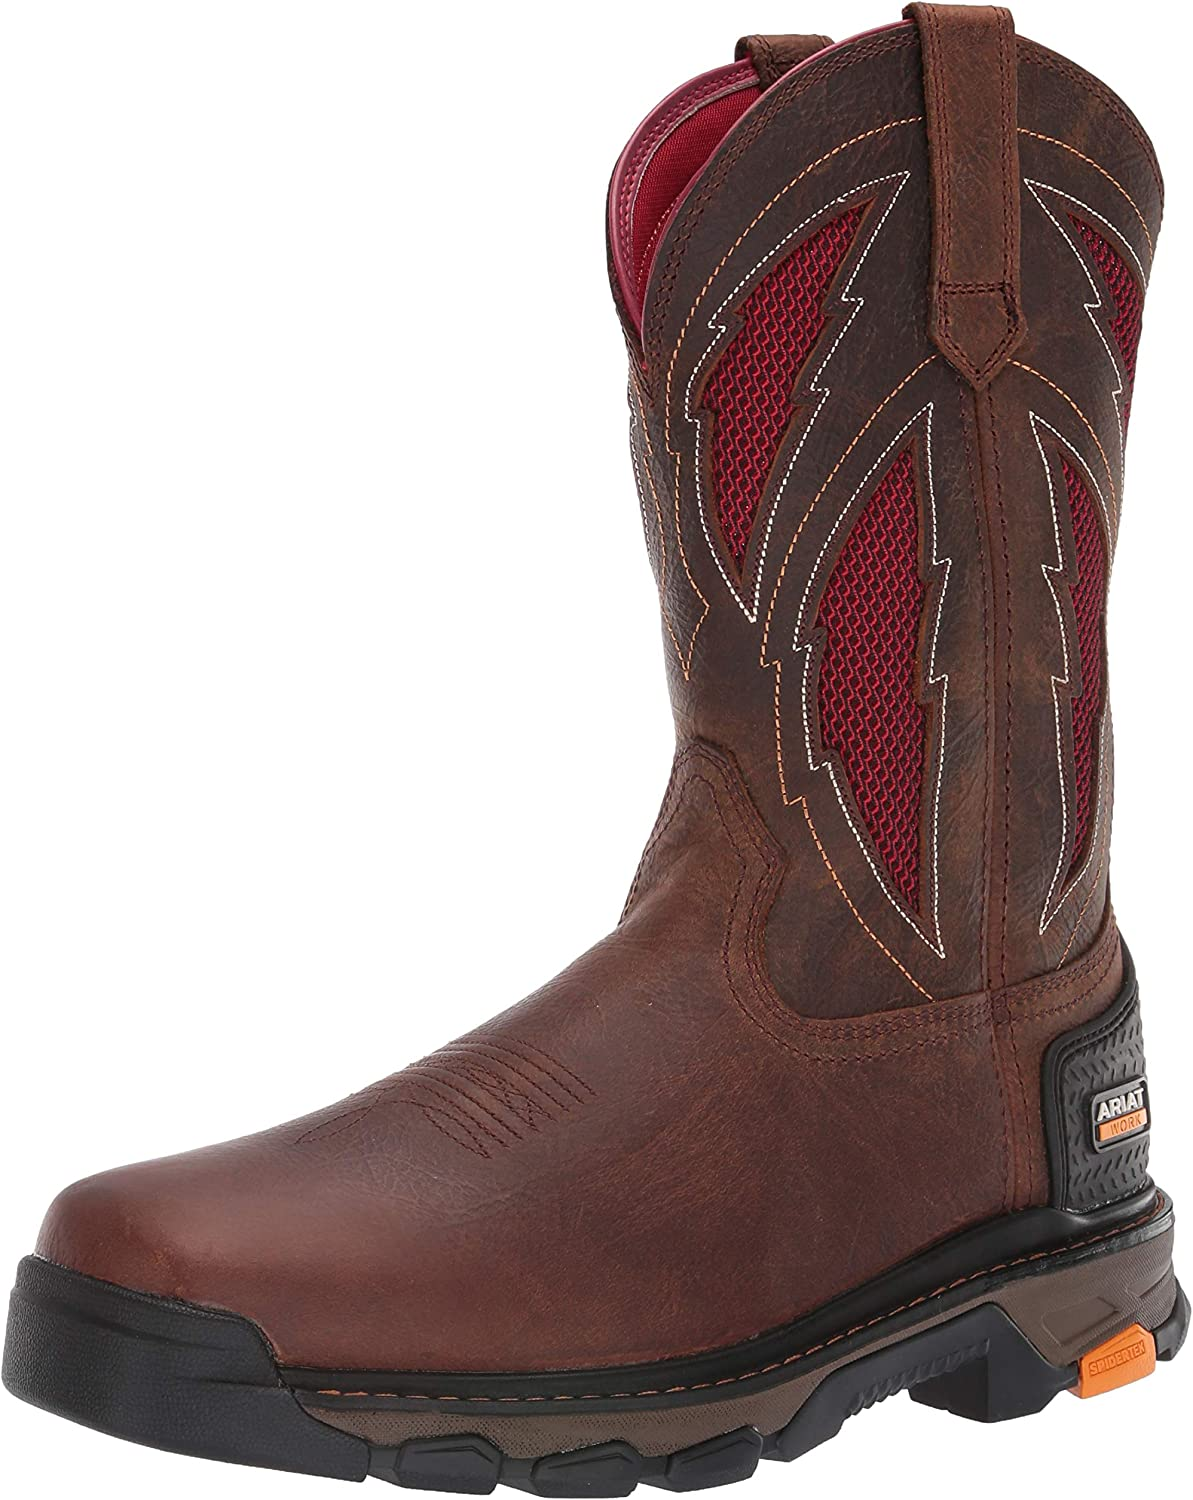 ARIAT Men's Intrepid Venttek Lightning Work Boot Industrial